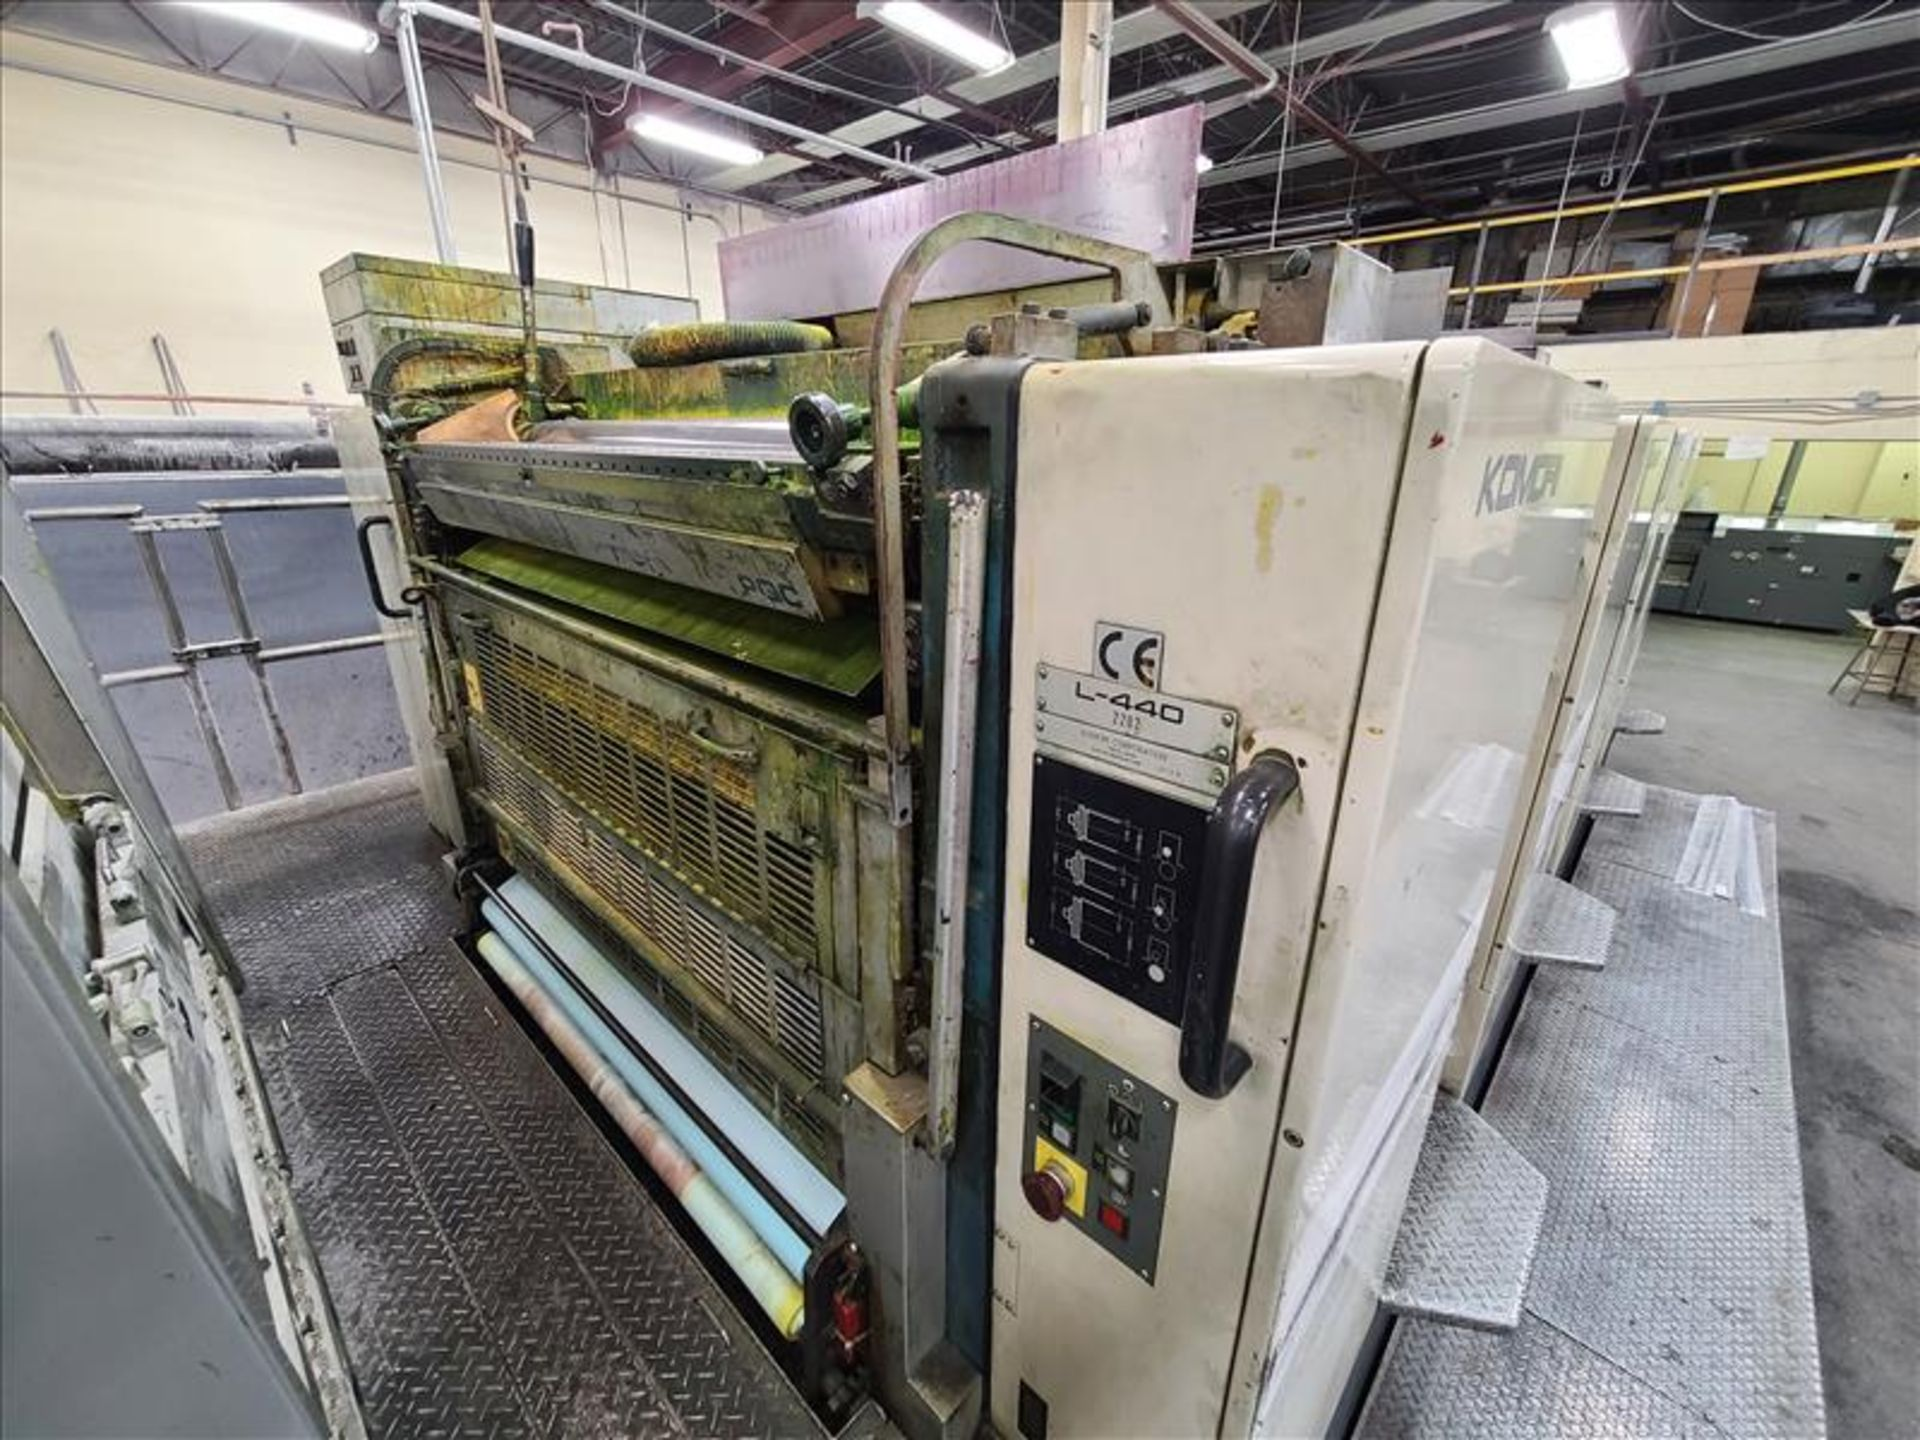 Komori 4-color offset printing press, Series Lithrone 40, model L-440, S/N.2202 approx. 68 - Image 3 of 22